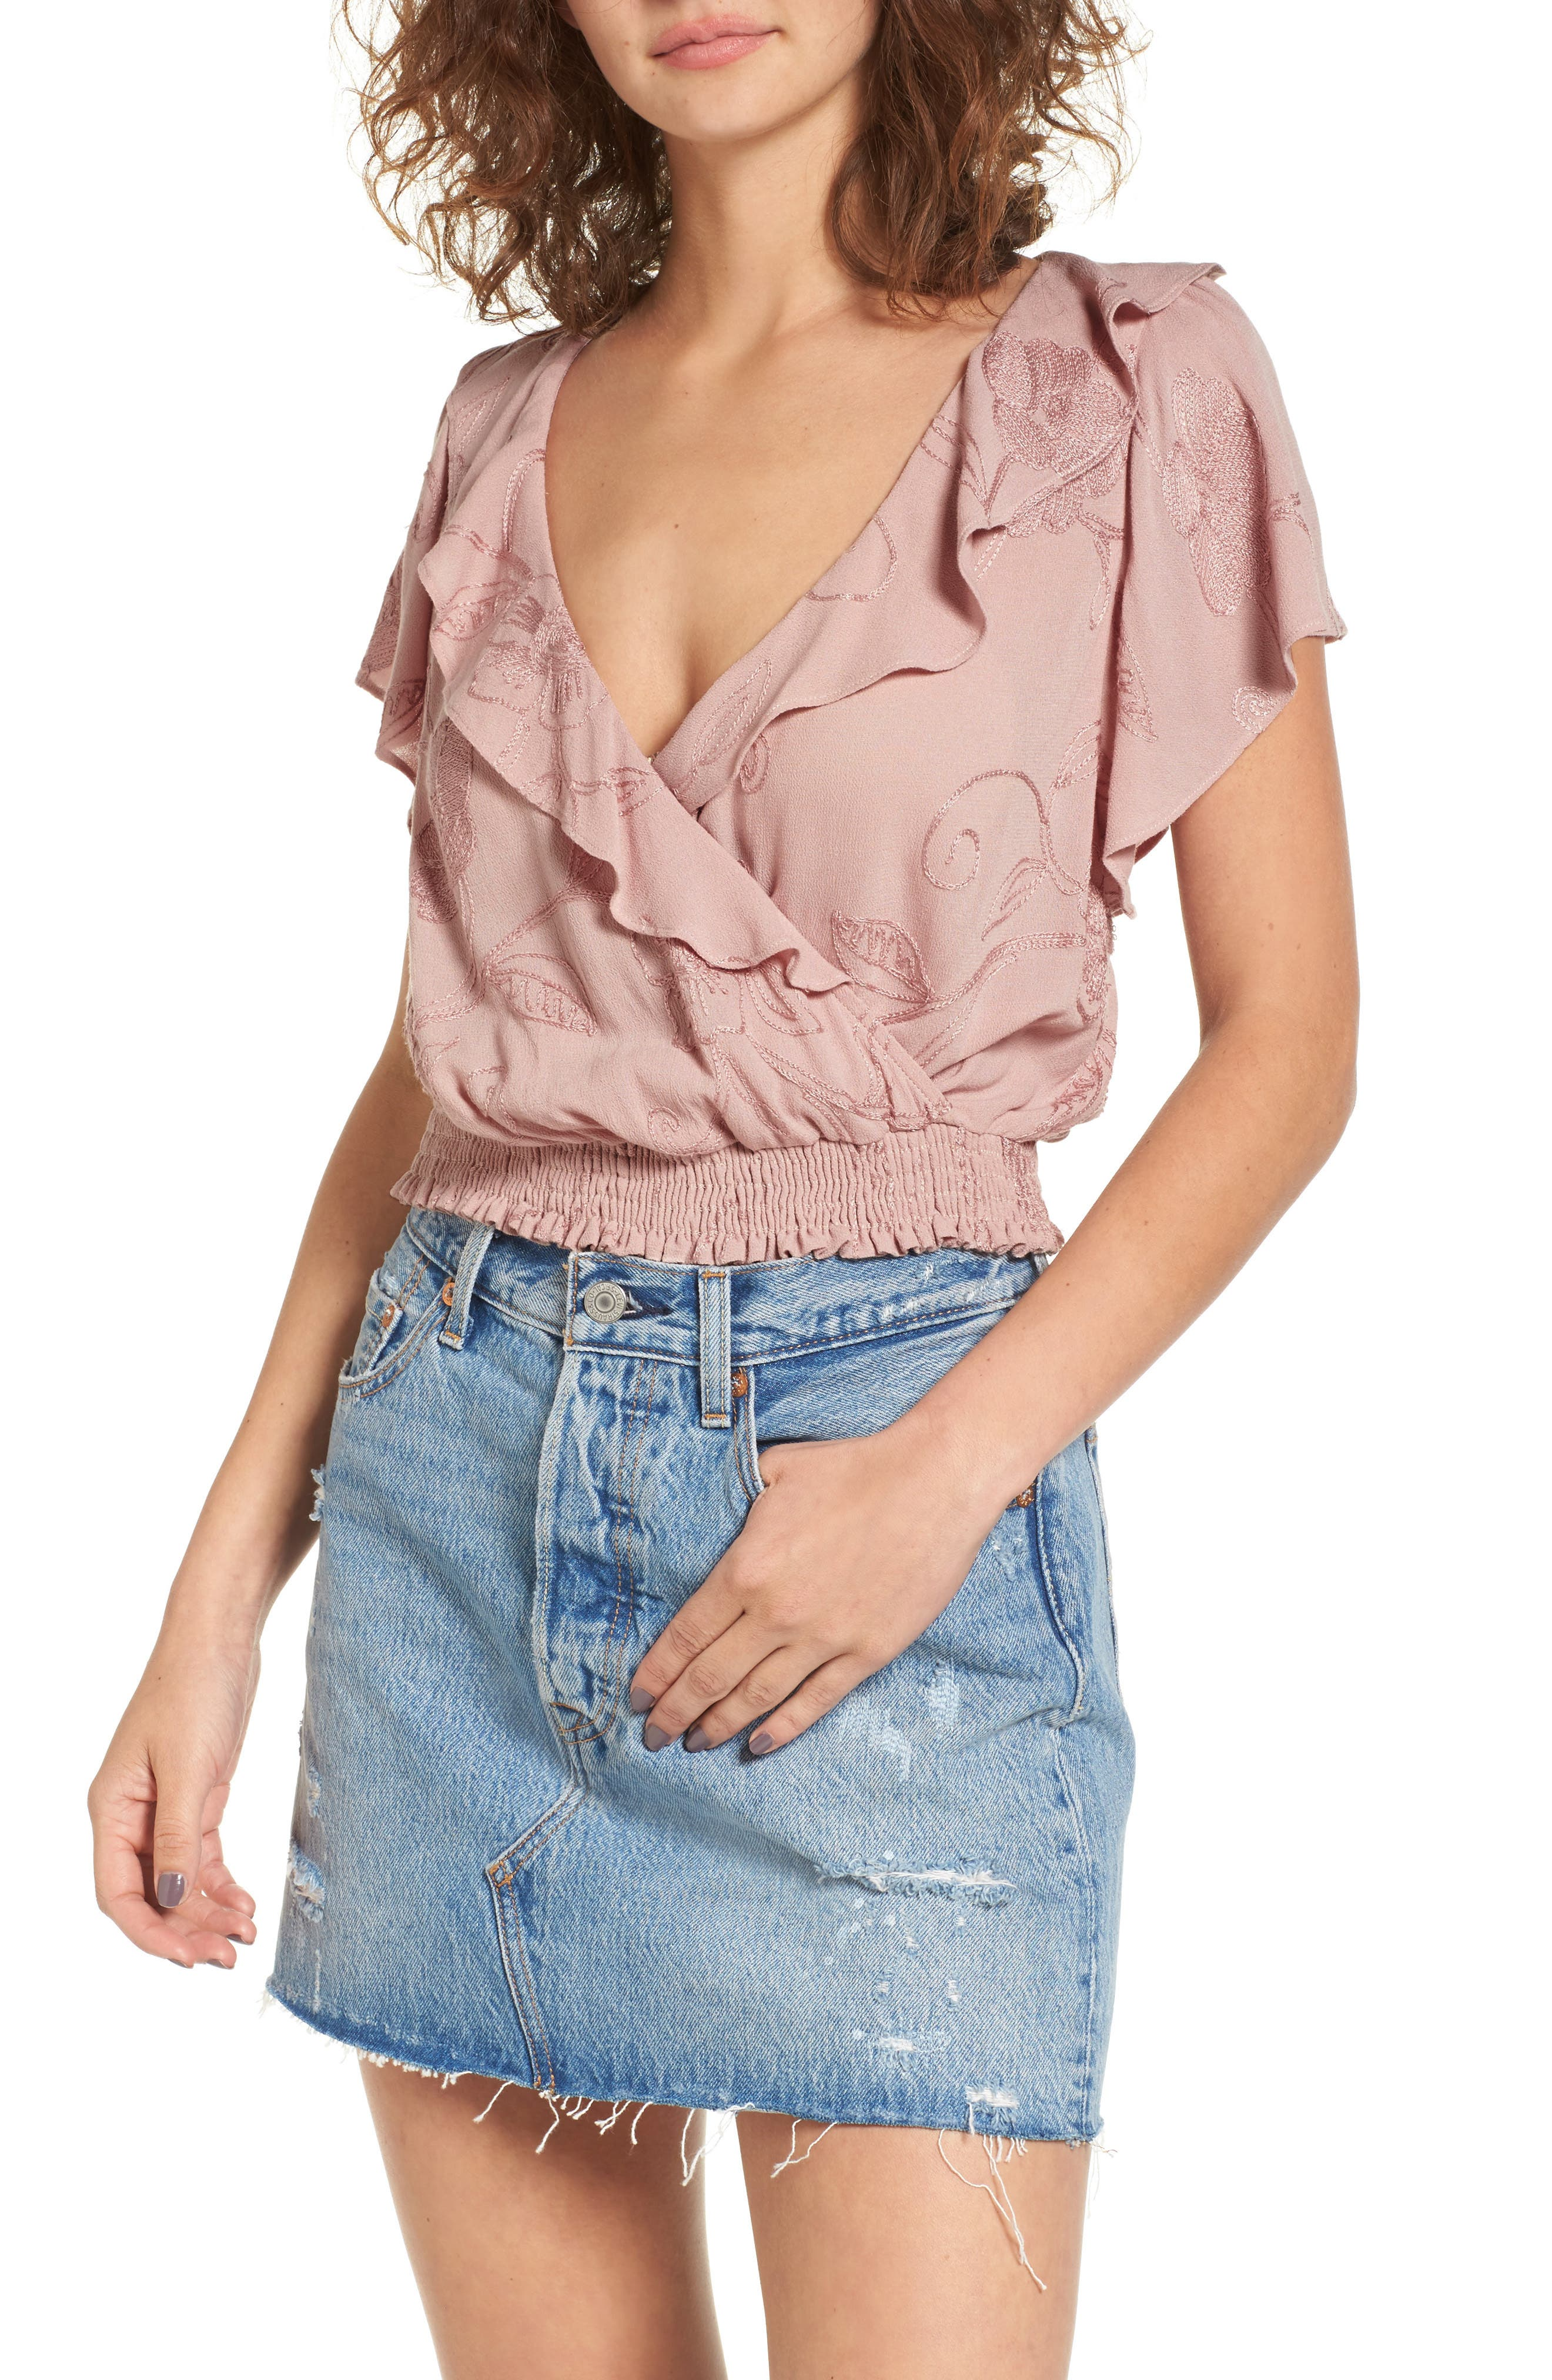 Alternate Image 1 Selected - ASTR the Label Ruffle Top